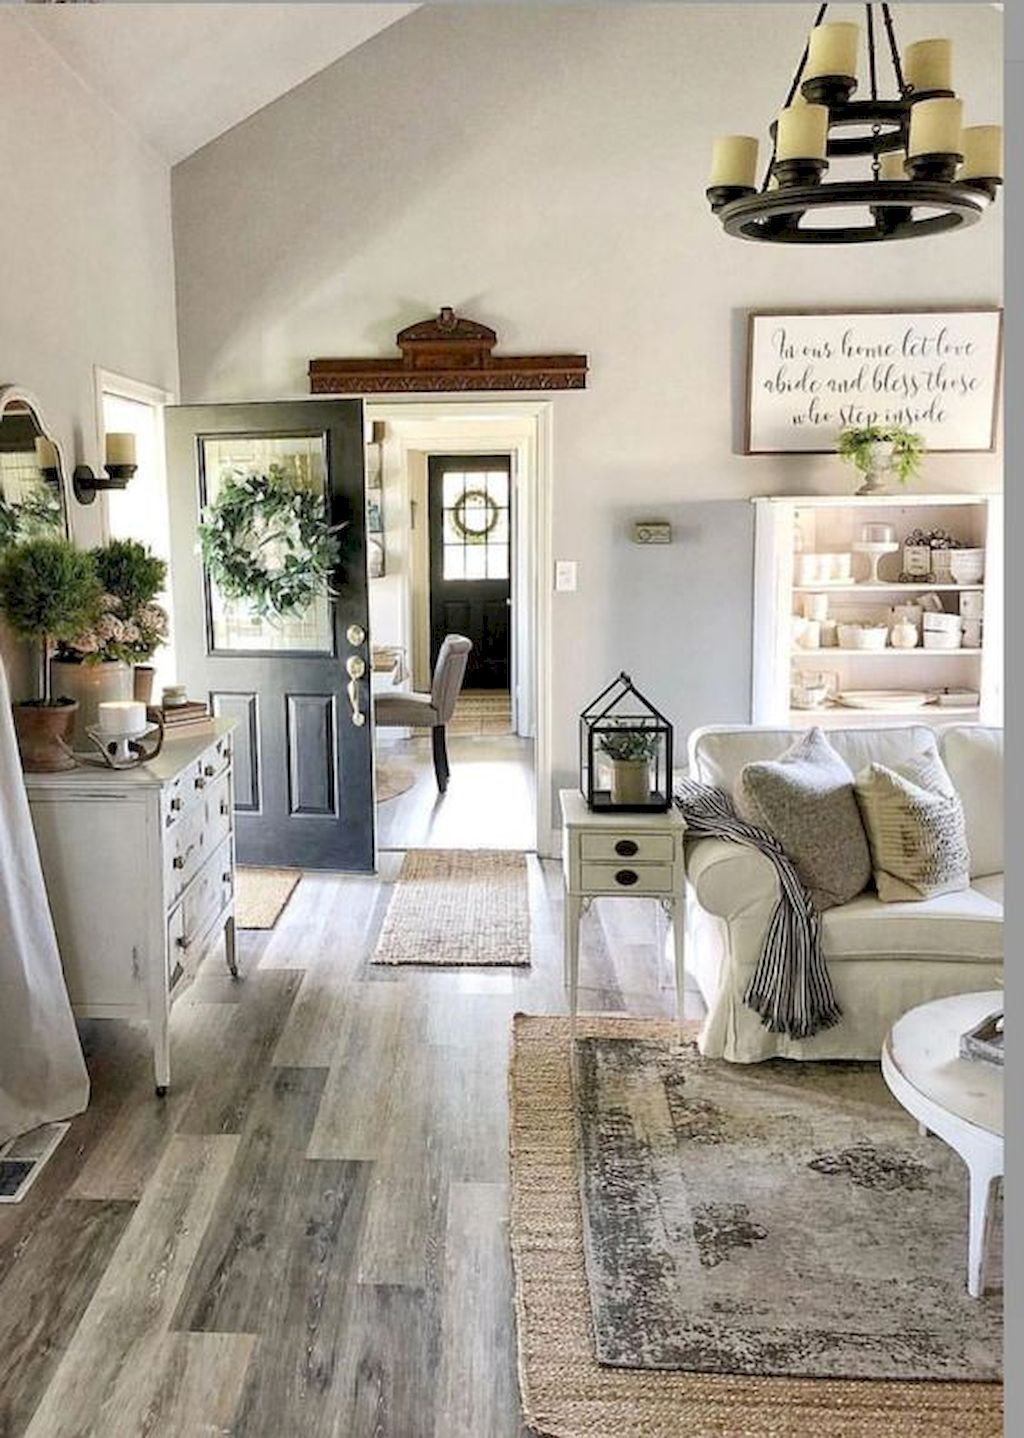 12 Cozy Rustic Farmhouse Living Room Remodel and Design Ideas ...